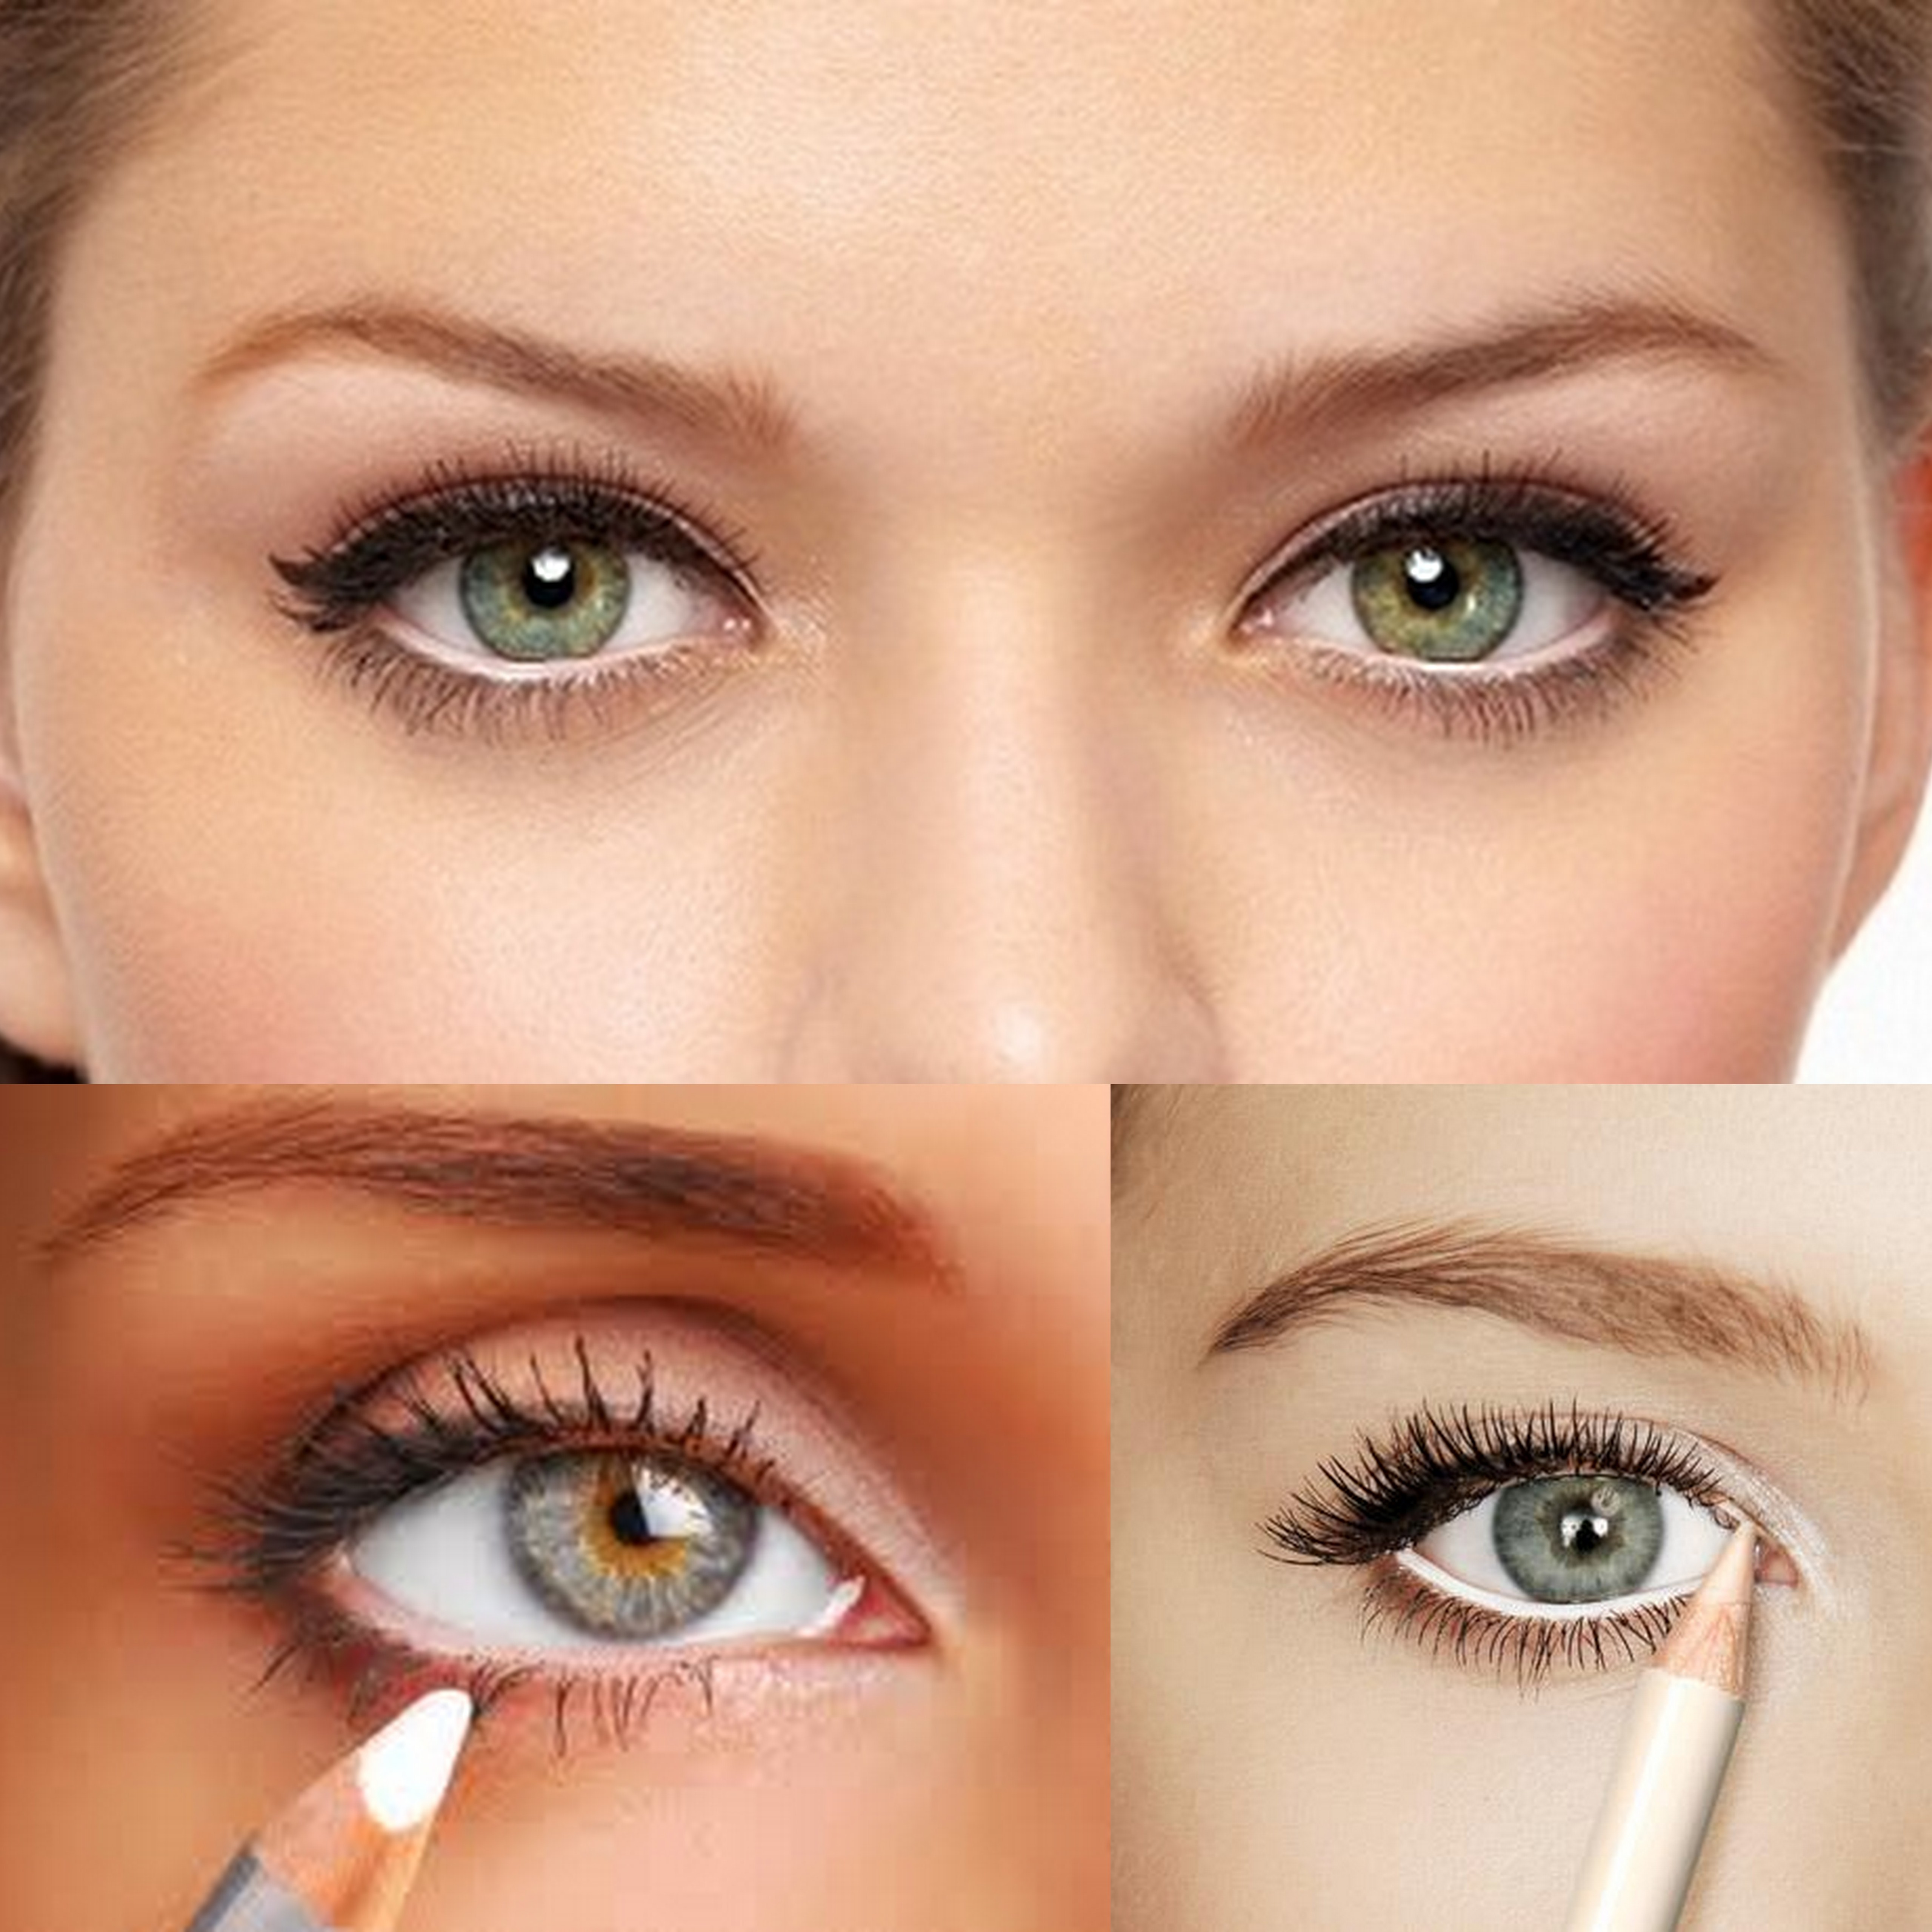 Maquillage pour petits yeux - Maquillage grand yeux ...